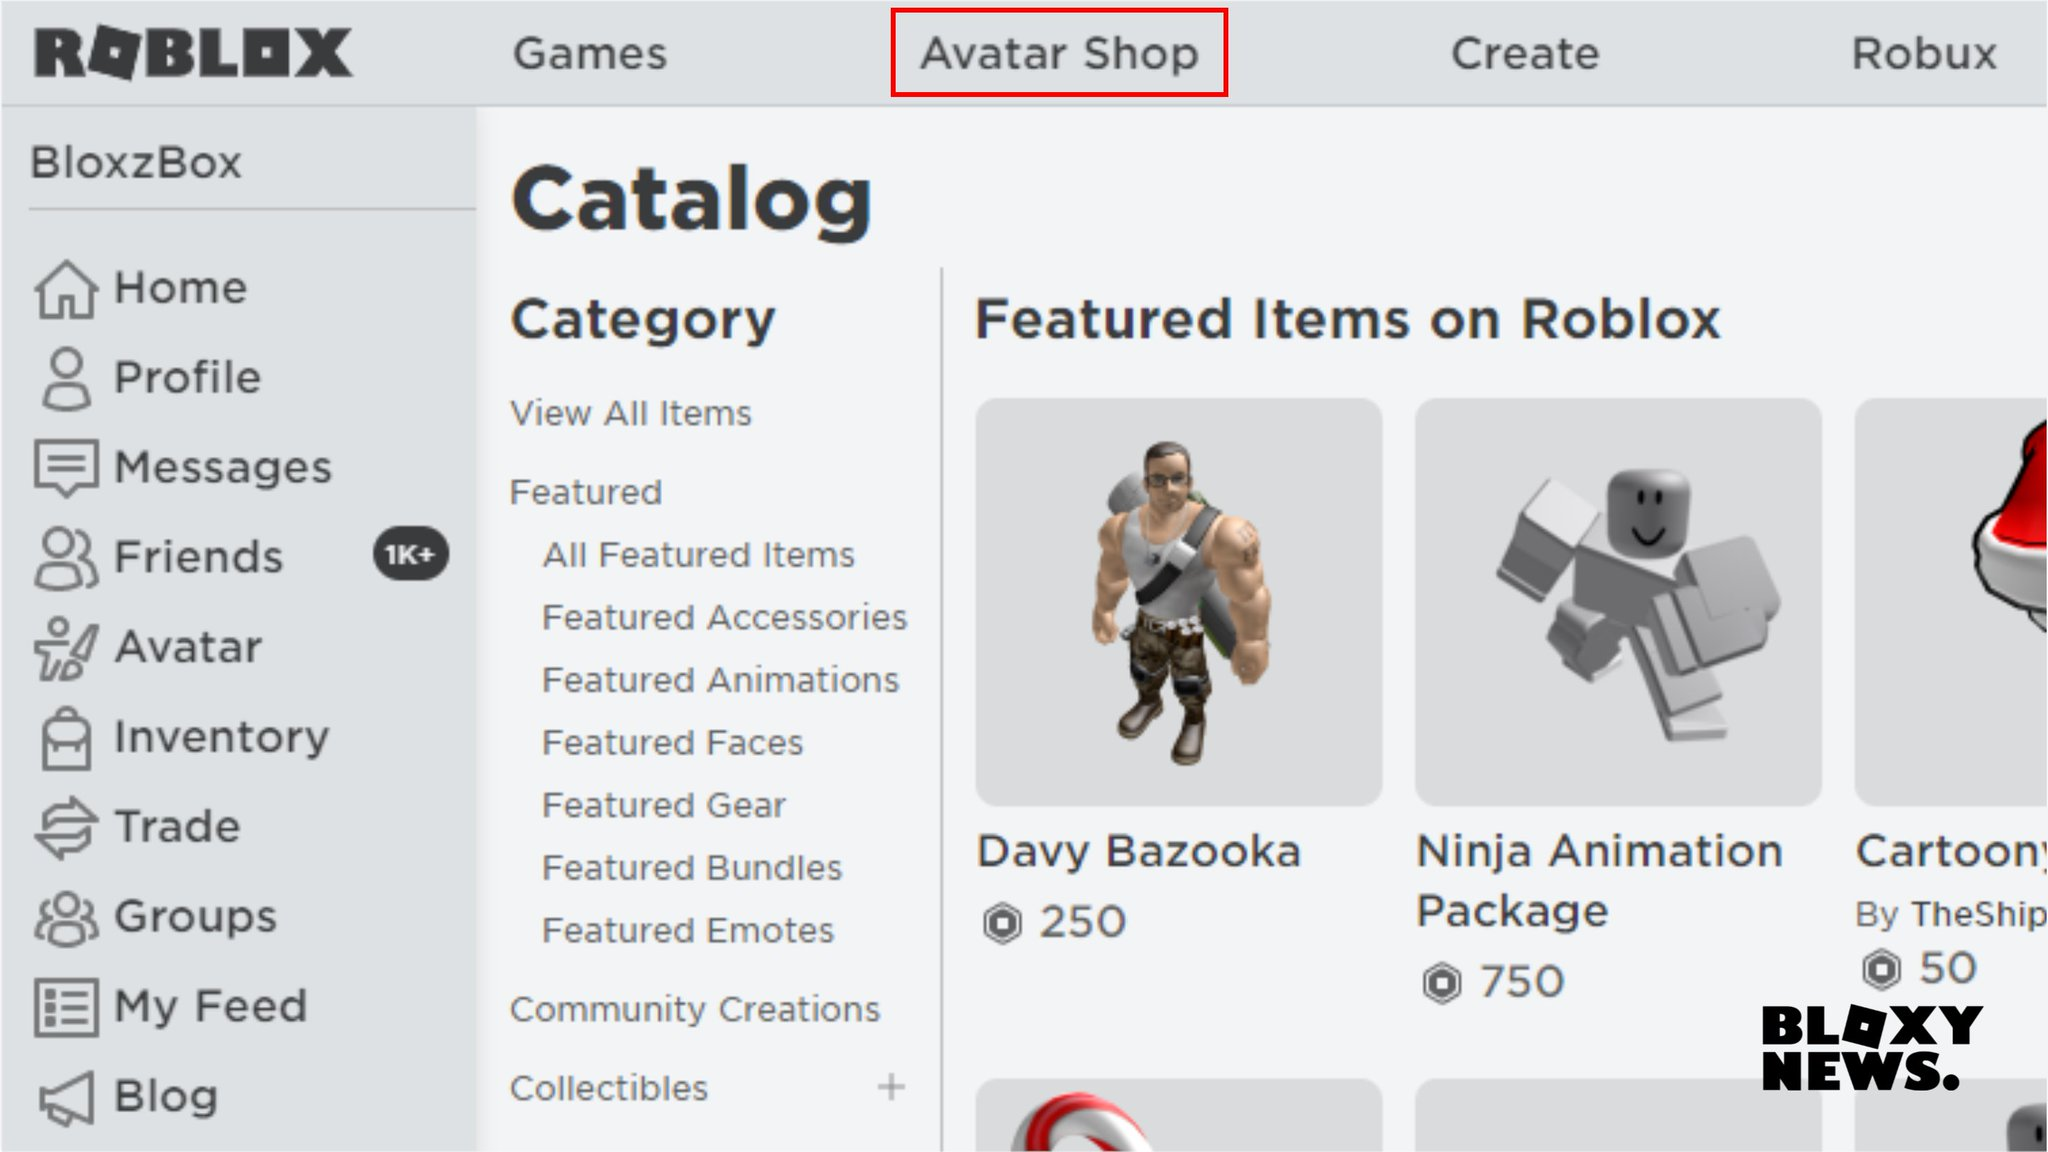 Bloxy News On Twitter The Roblox Catalog Has Been Renamed To Avatar Shop It Still Currently Says Catalog On The Page But It Is Changed On The Navigation Bar What Do You